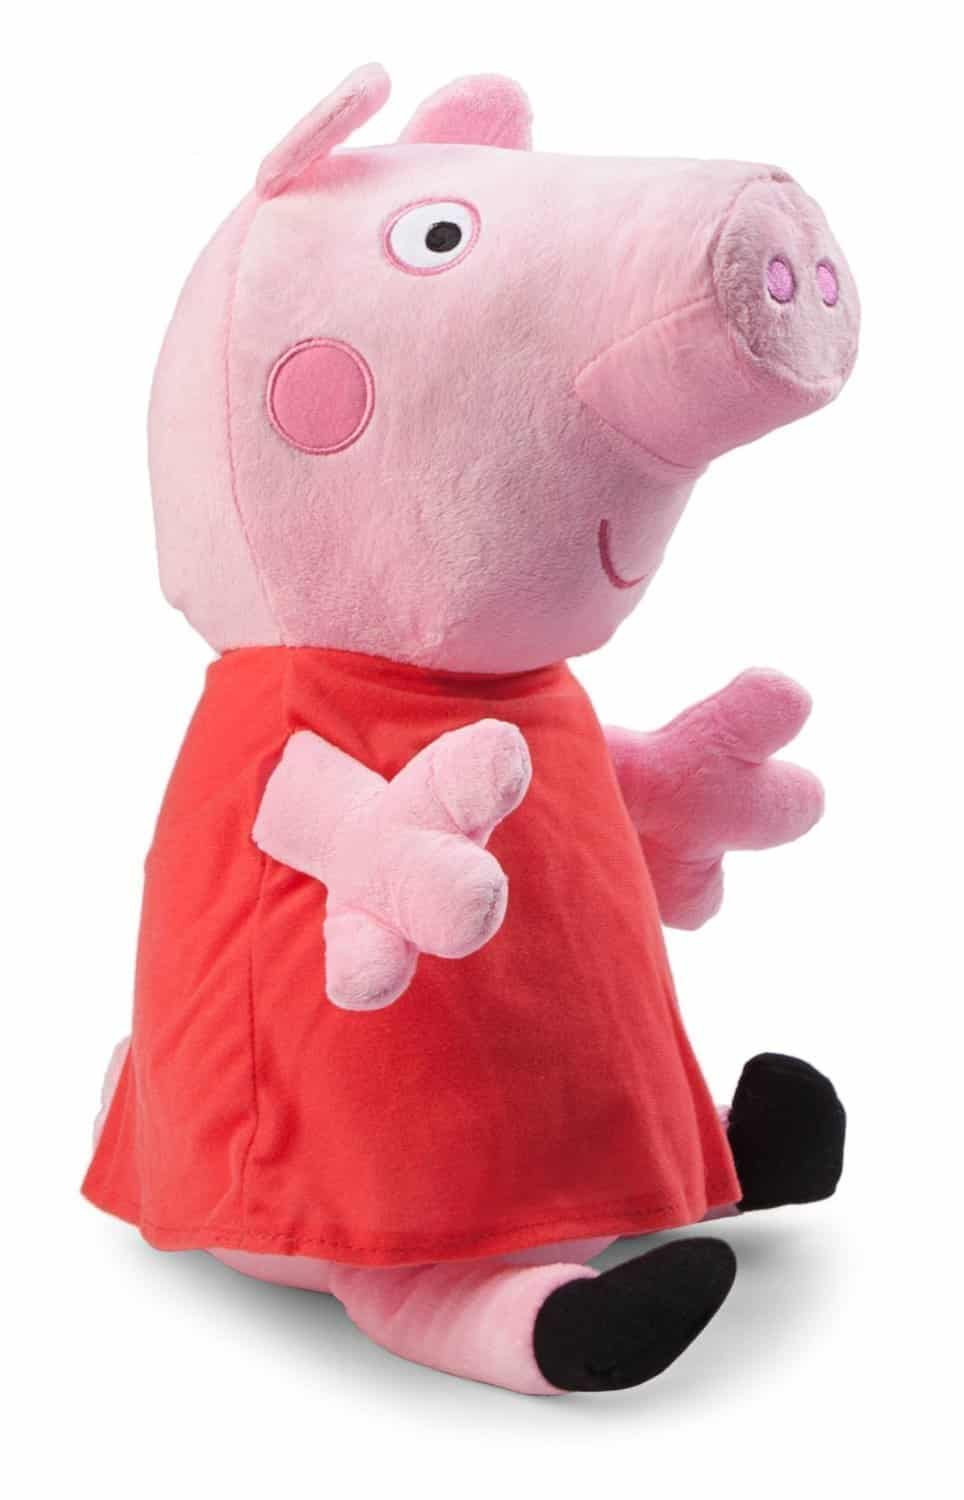 "Peppa Pig 17.5"" Plush Doll"